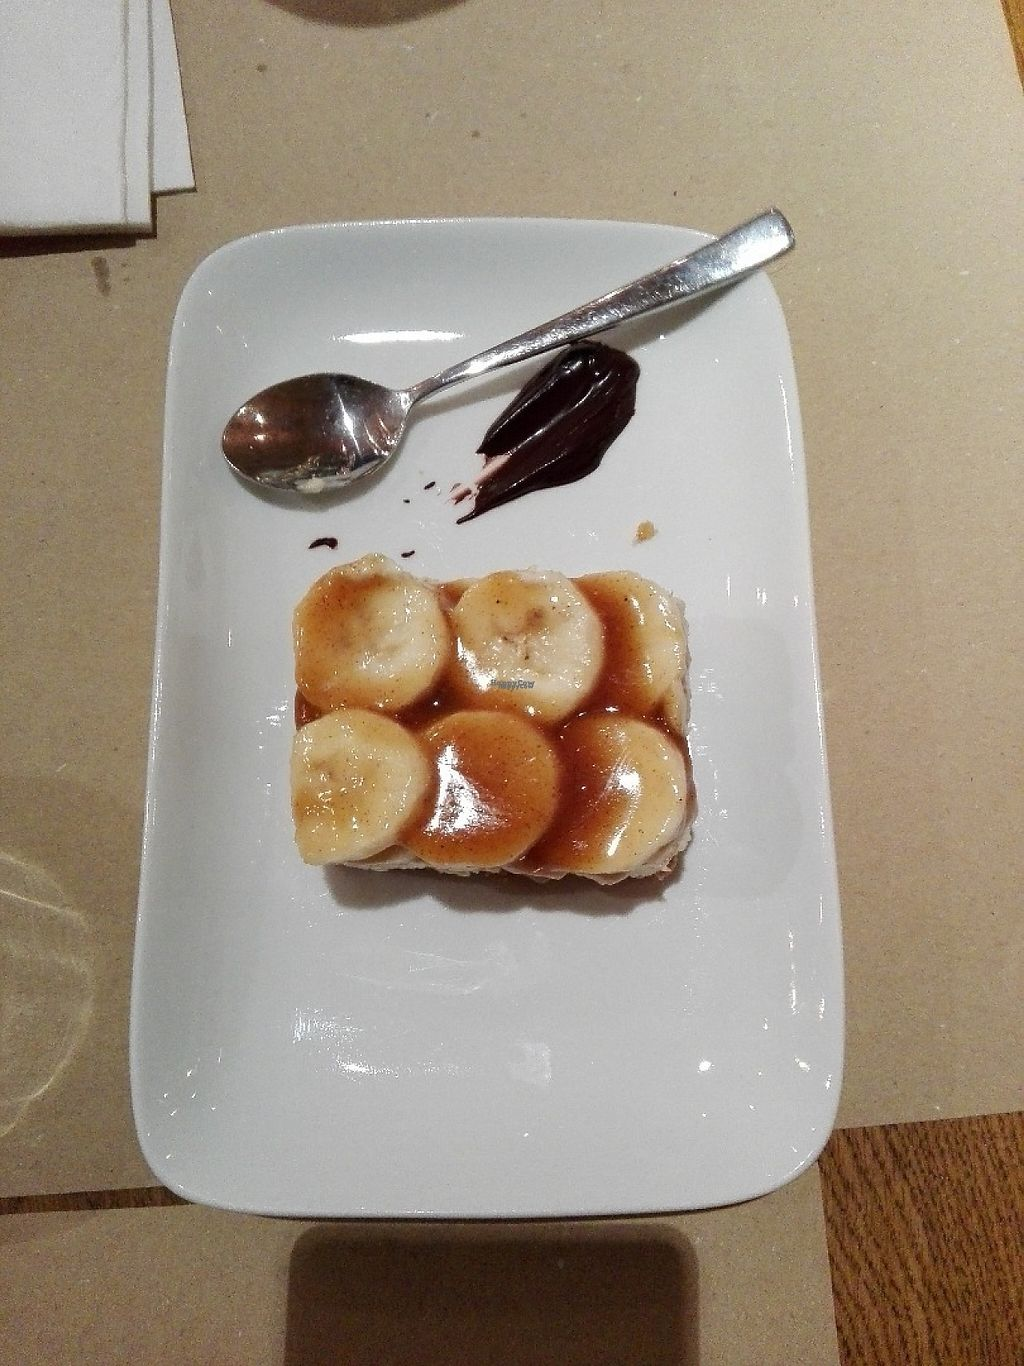 """Photo of Yi  by <a href=""""/members/profile/ElisaGR"""">ElisaGR</a> <br/>Banoffee pie! My friend got two of them, this says it all! <br/> January 30, 2017  - <a href='/contact/abuse/image/58217/219490'>Report</a>"""